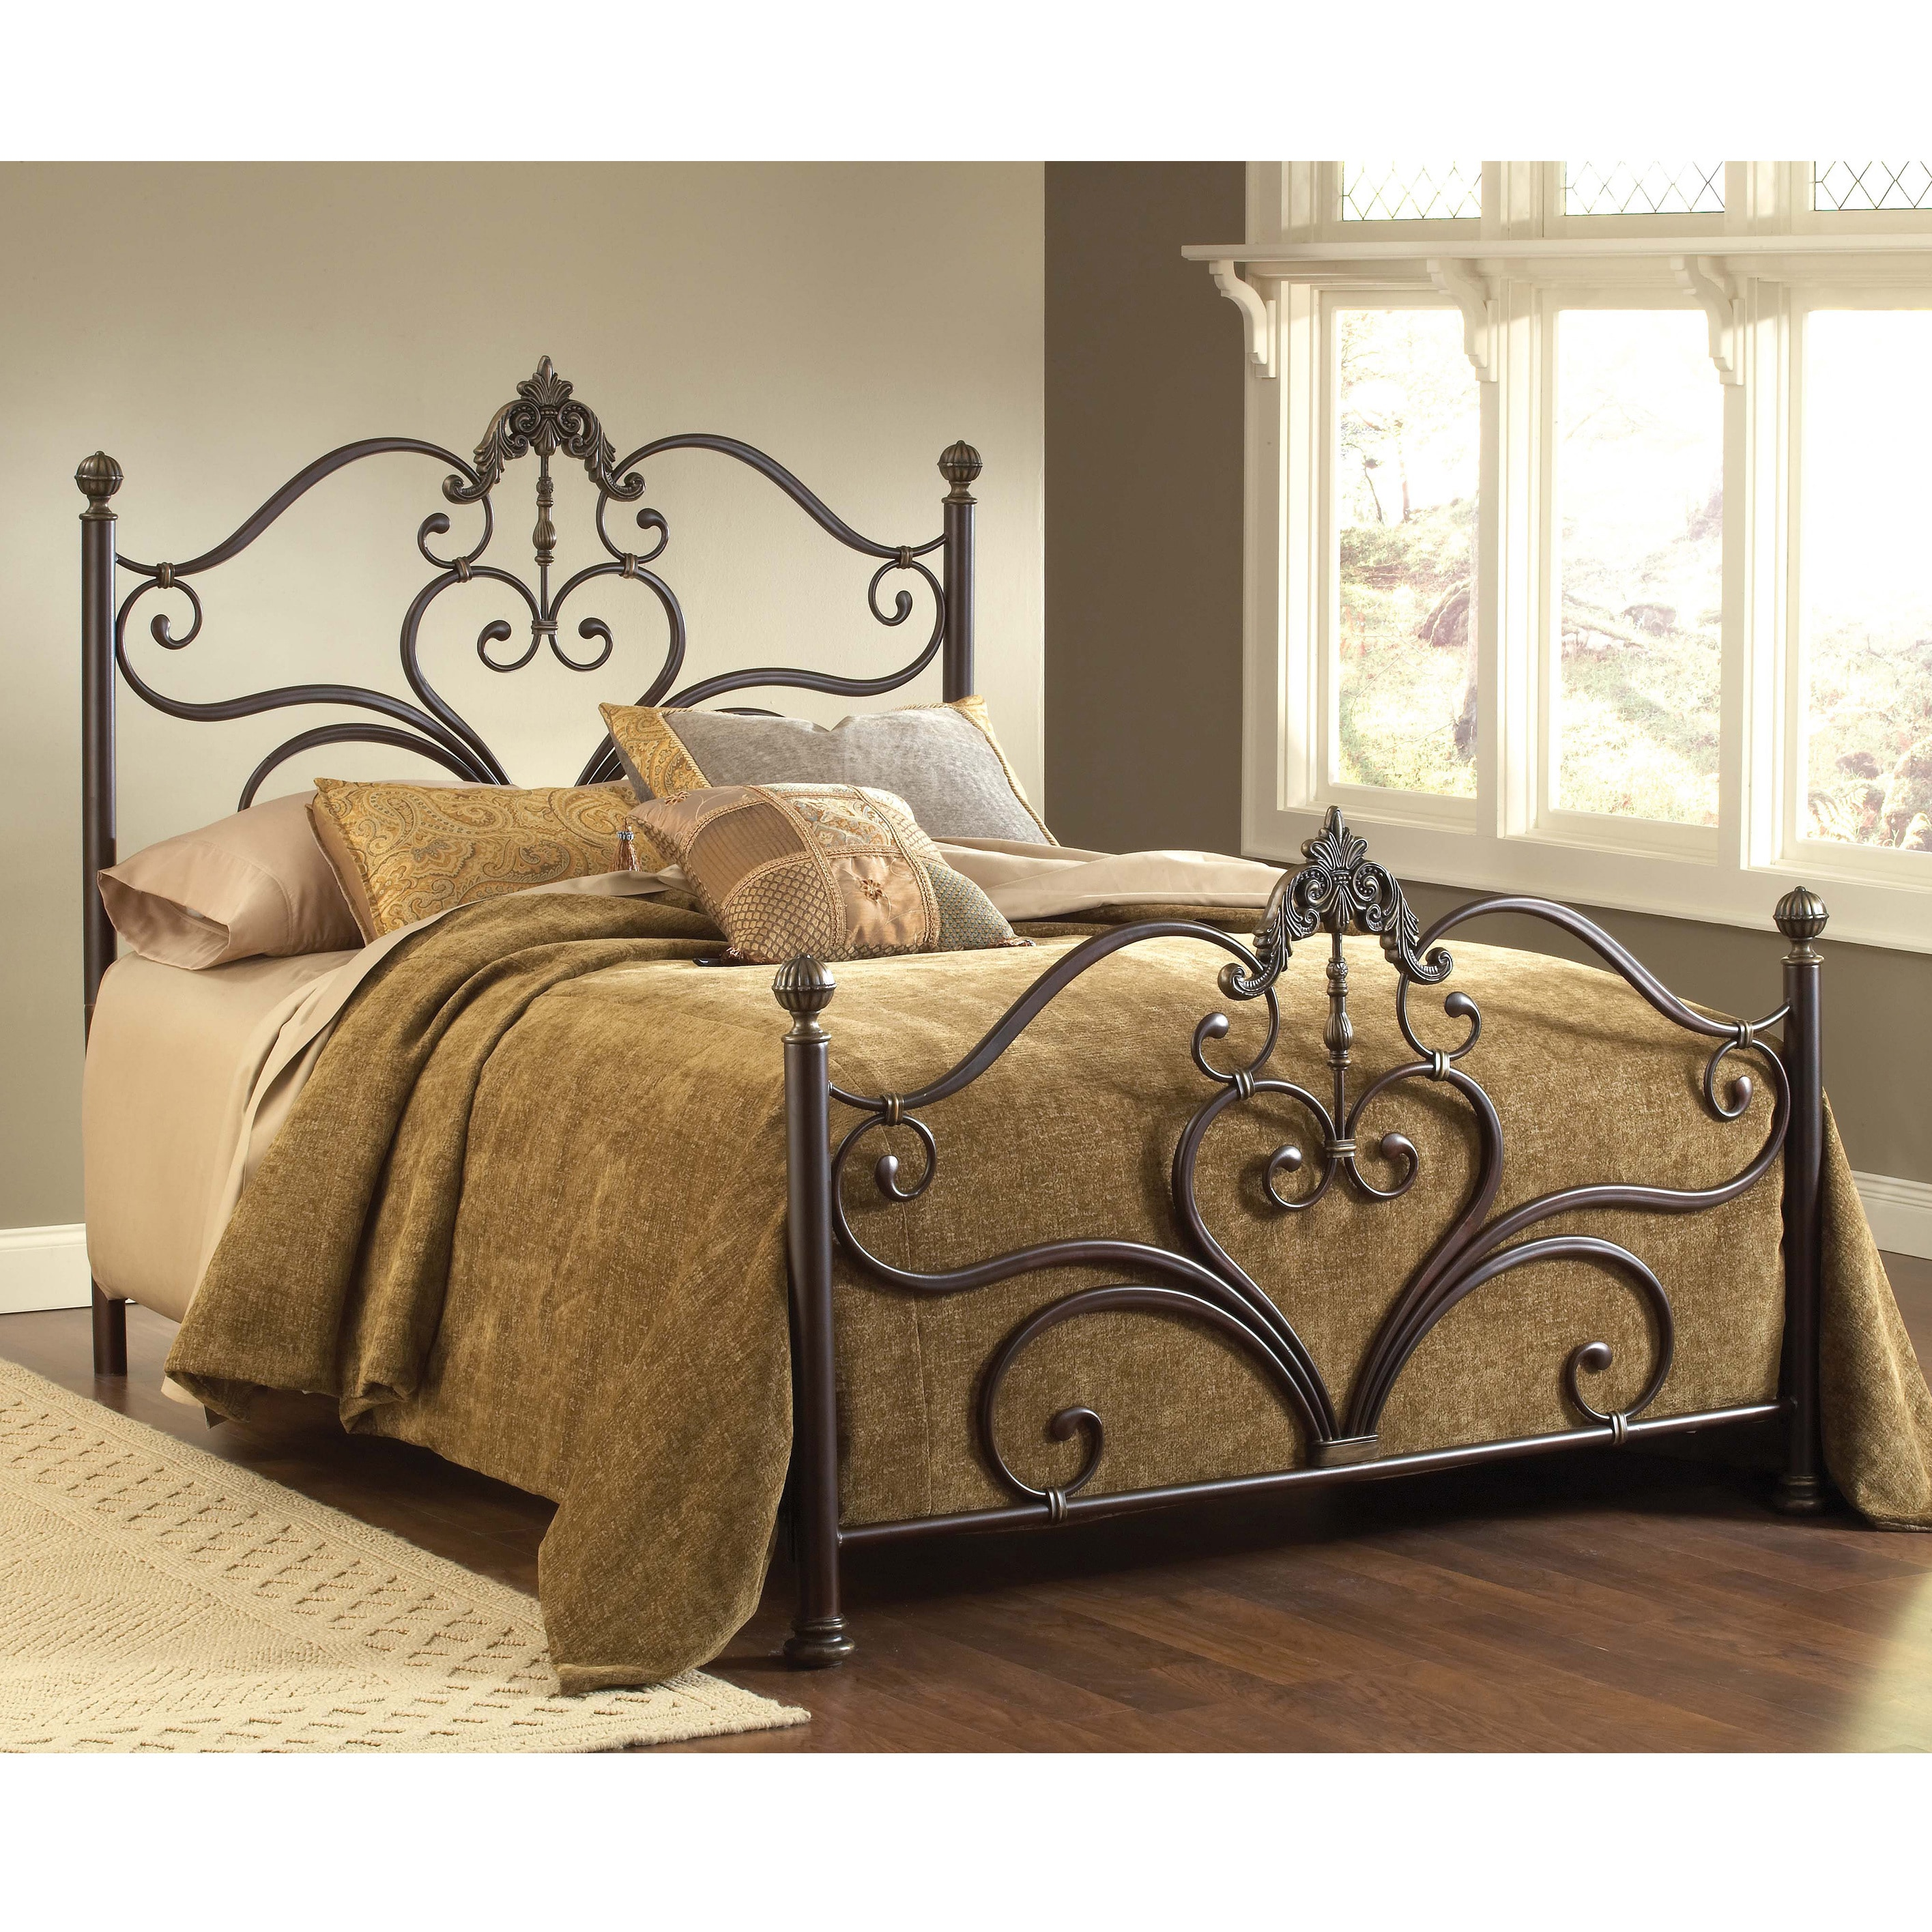 Hillsdale Newton Antique Brown Bed Set at Sears.com